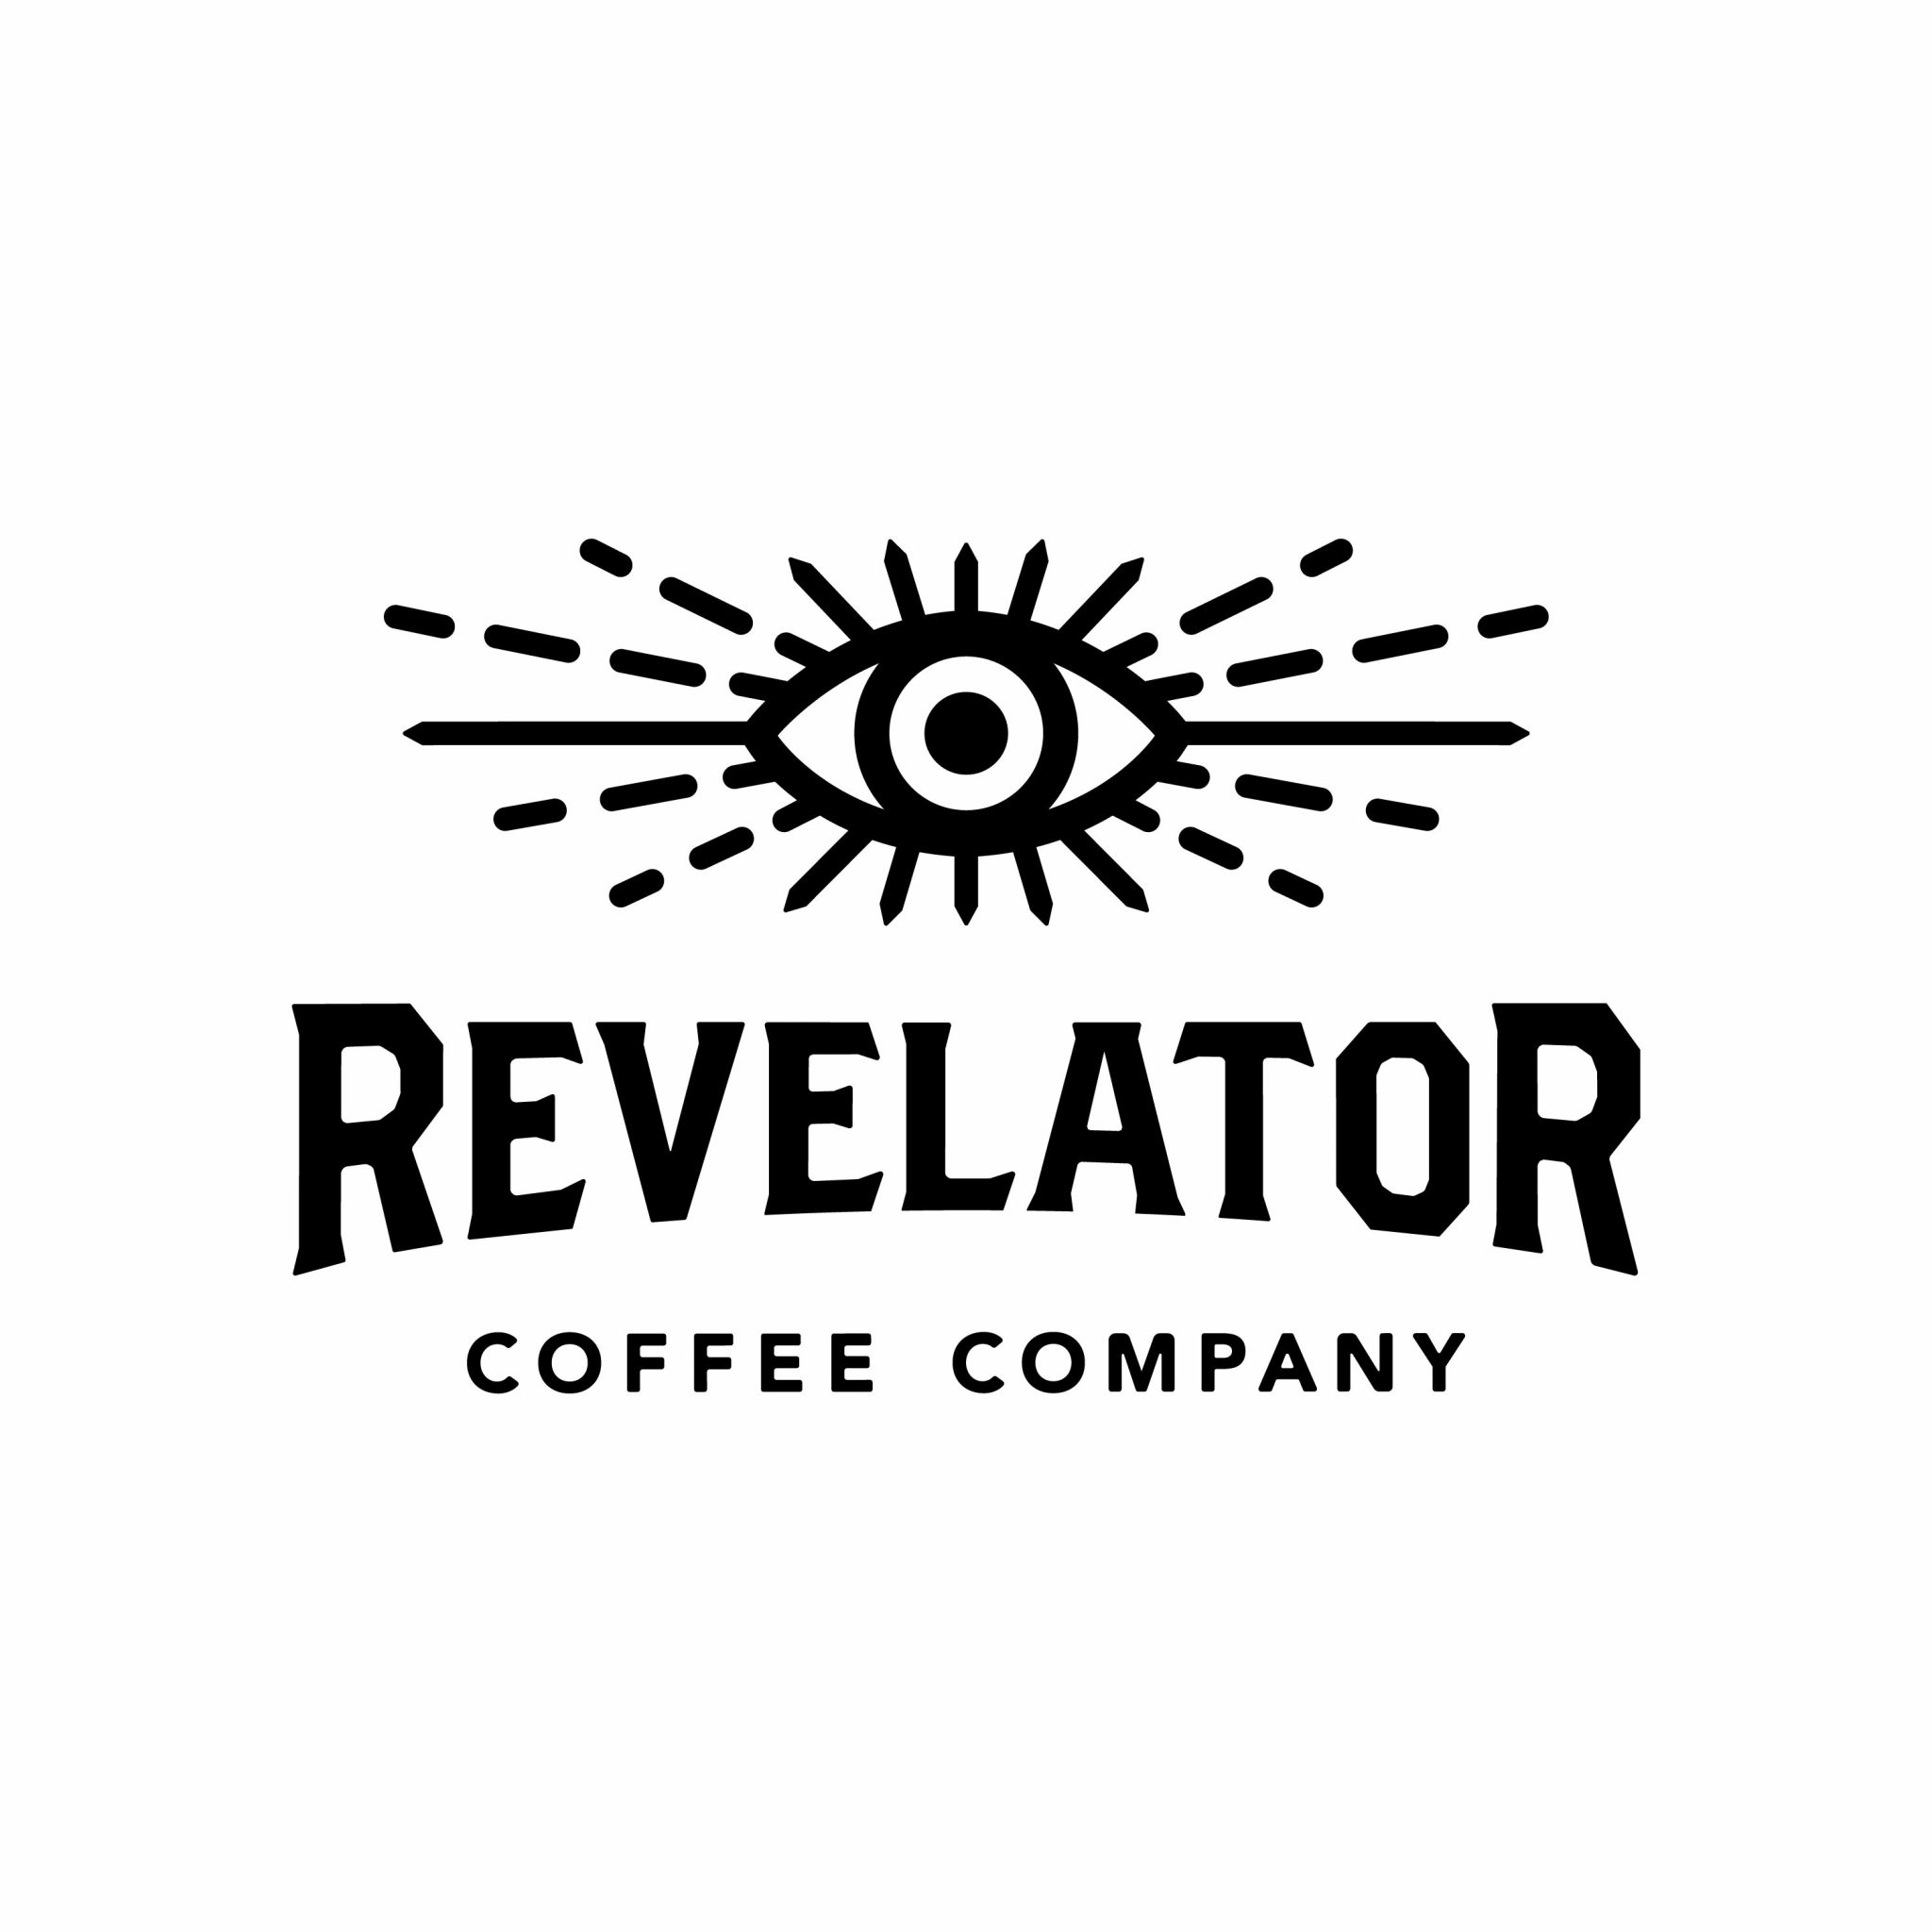 revelator coffee logo